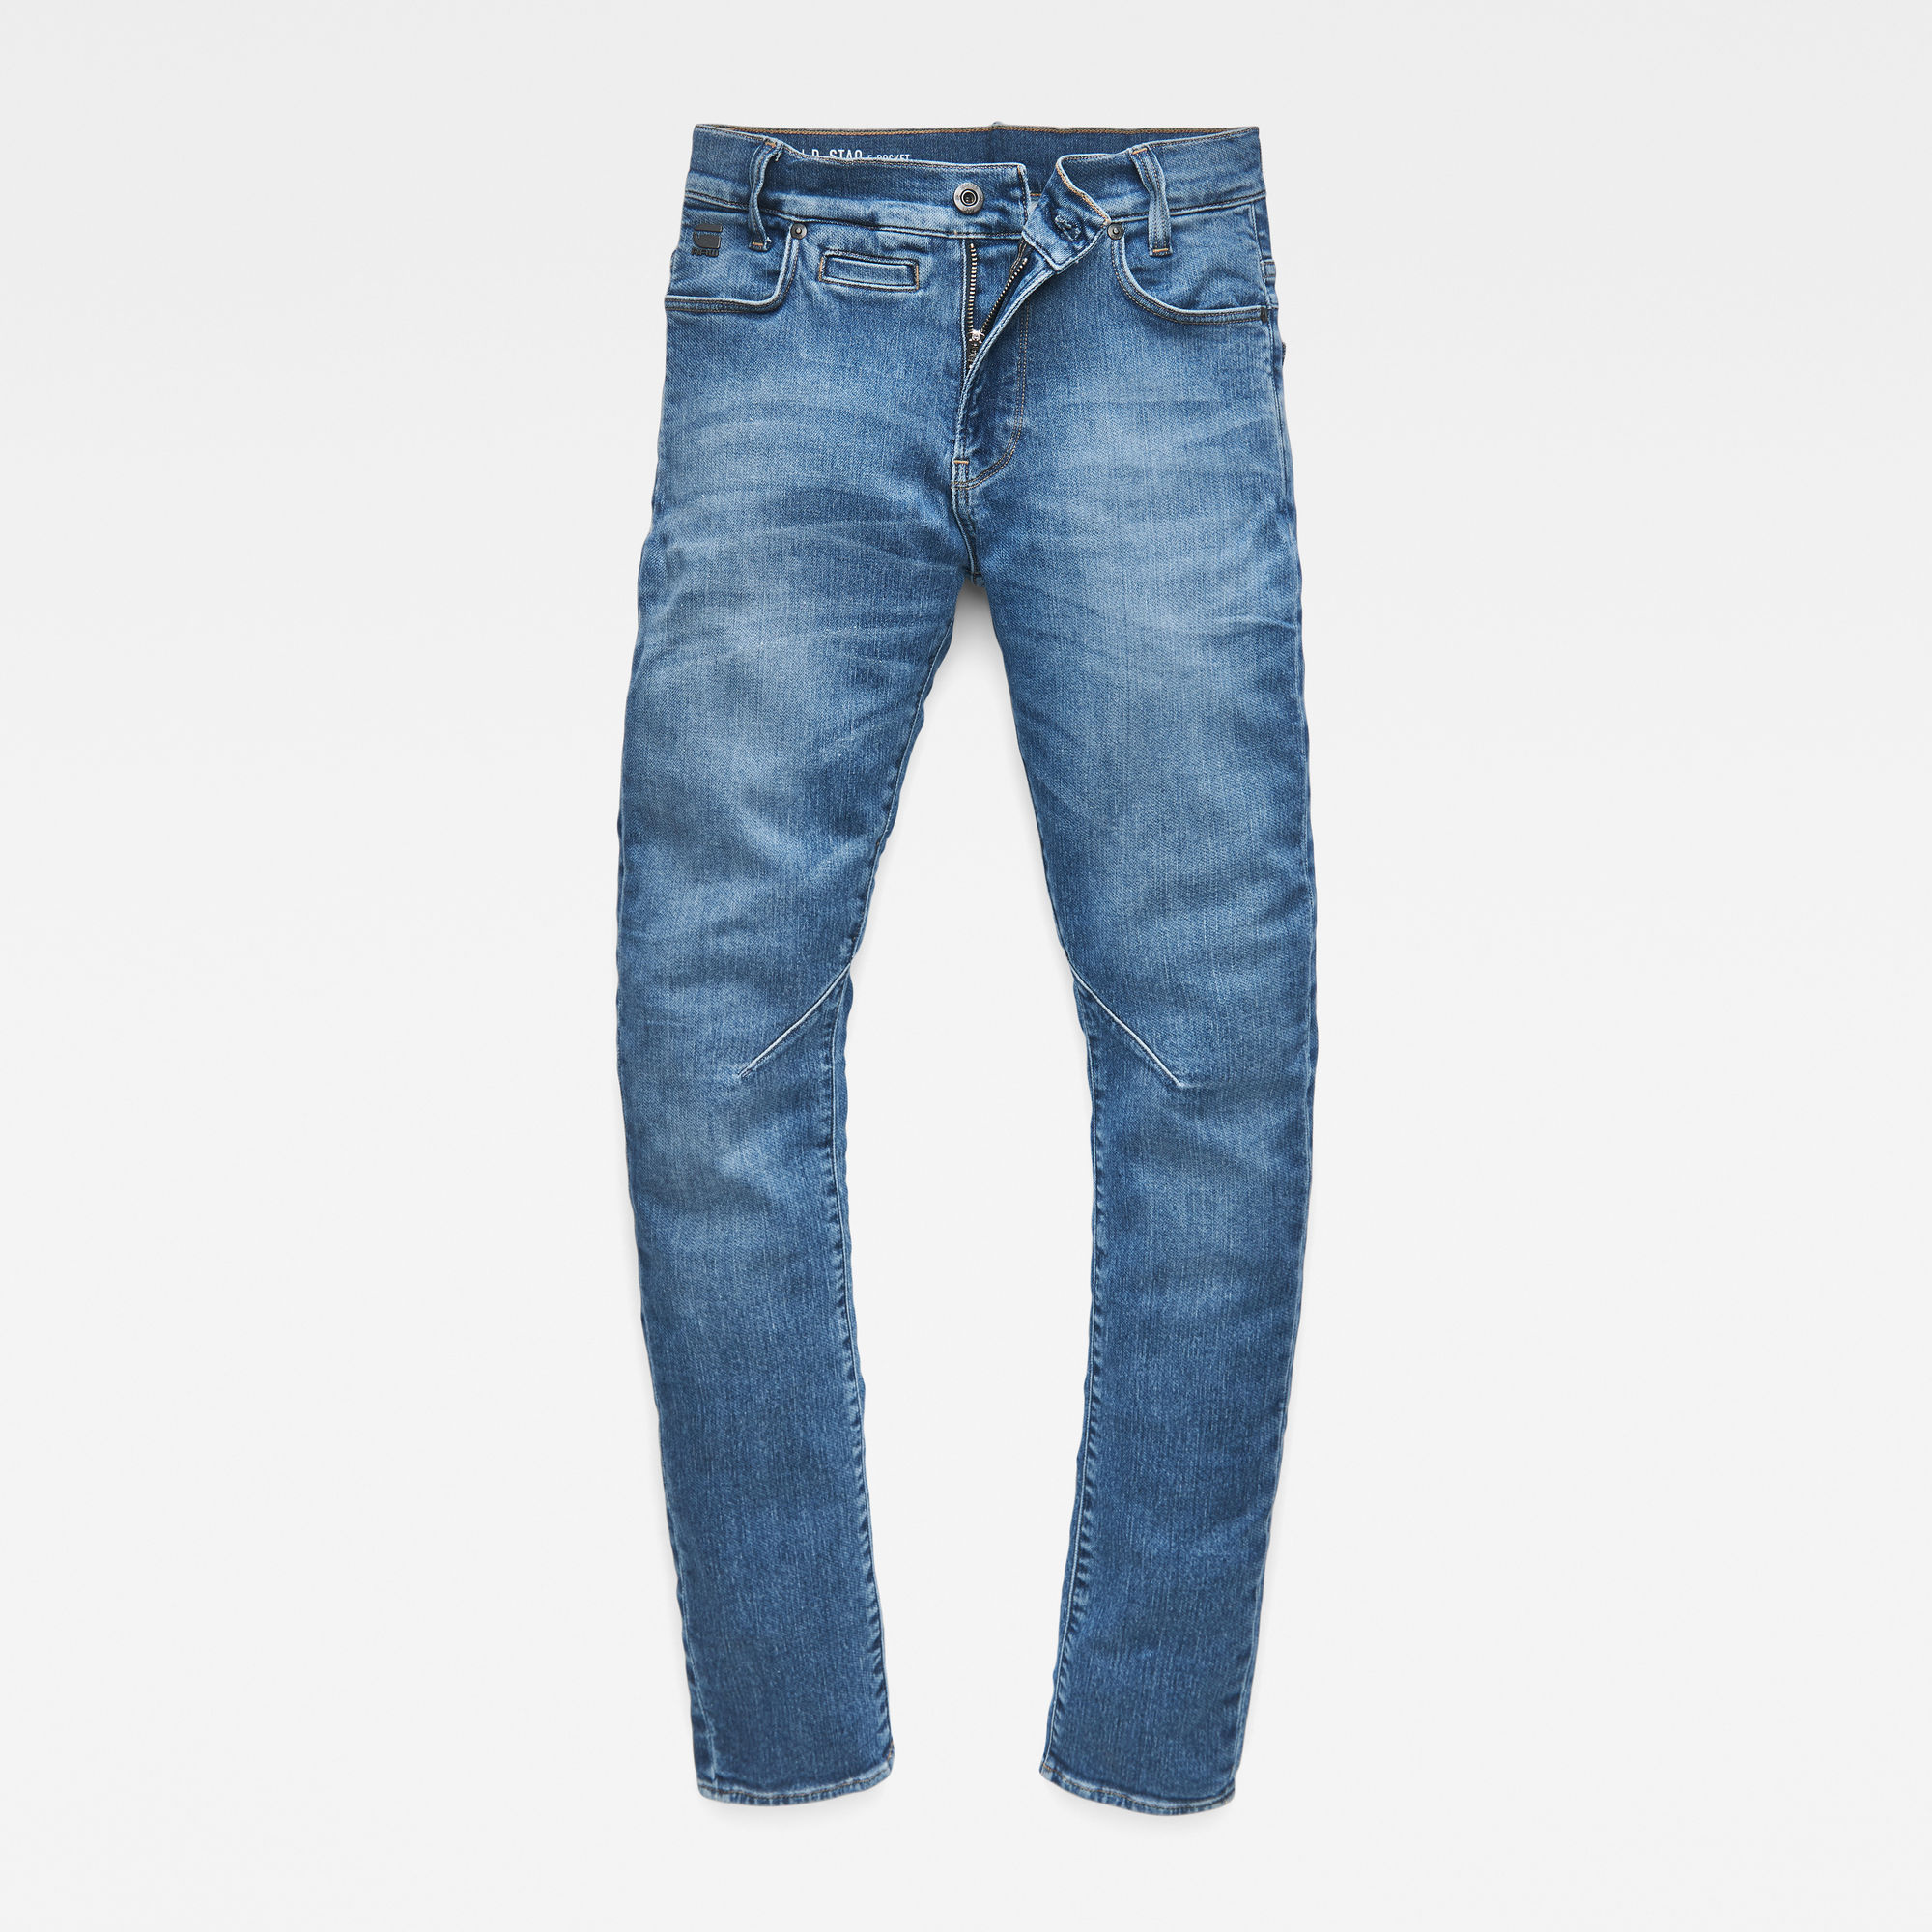 Staq Tapered Jeans